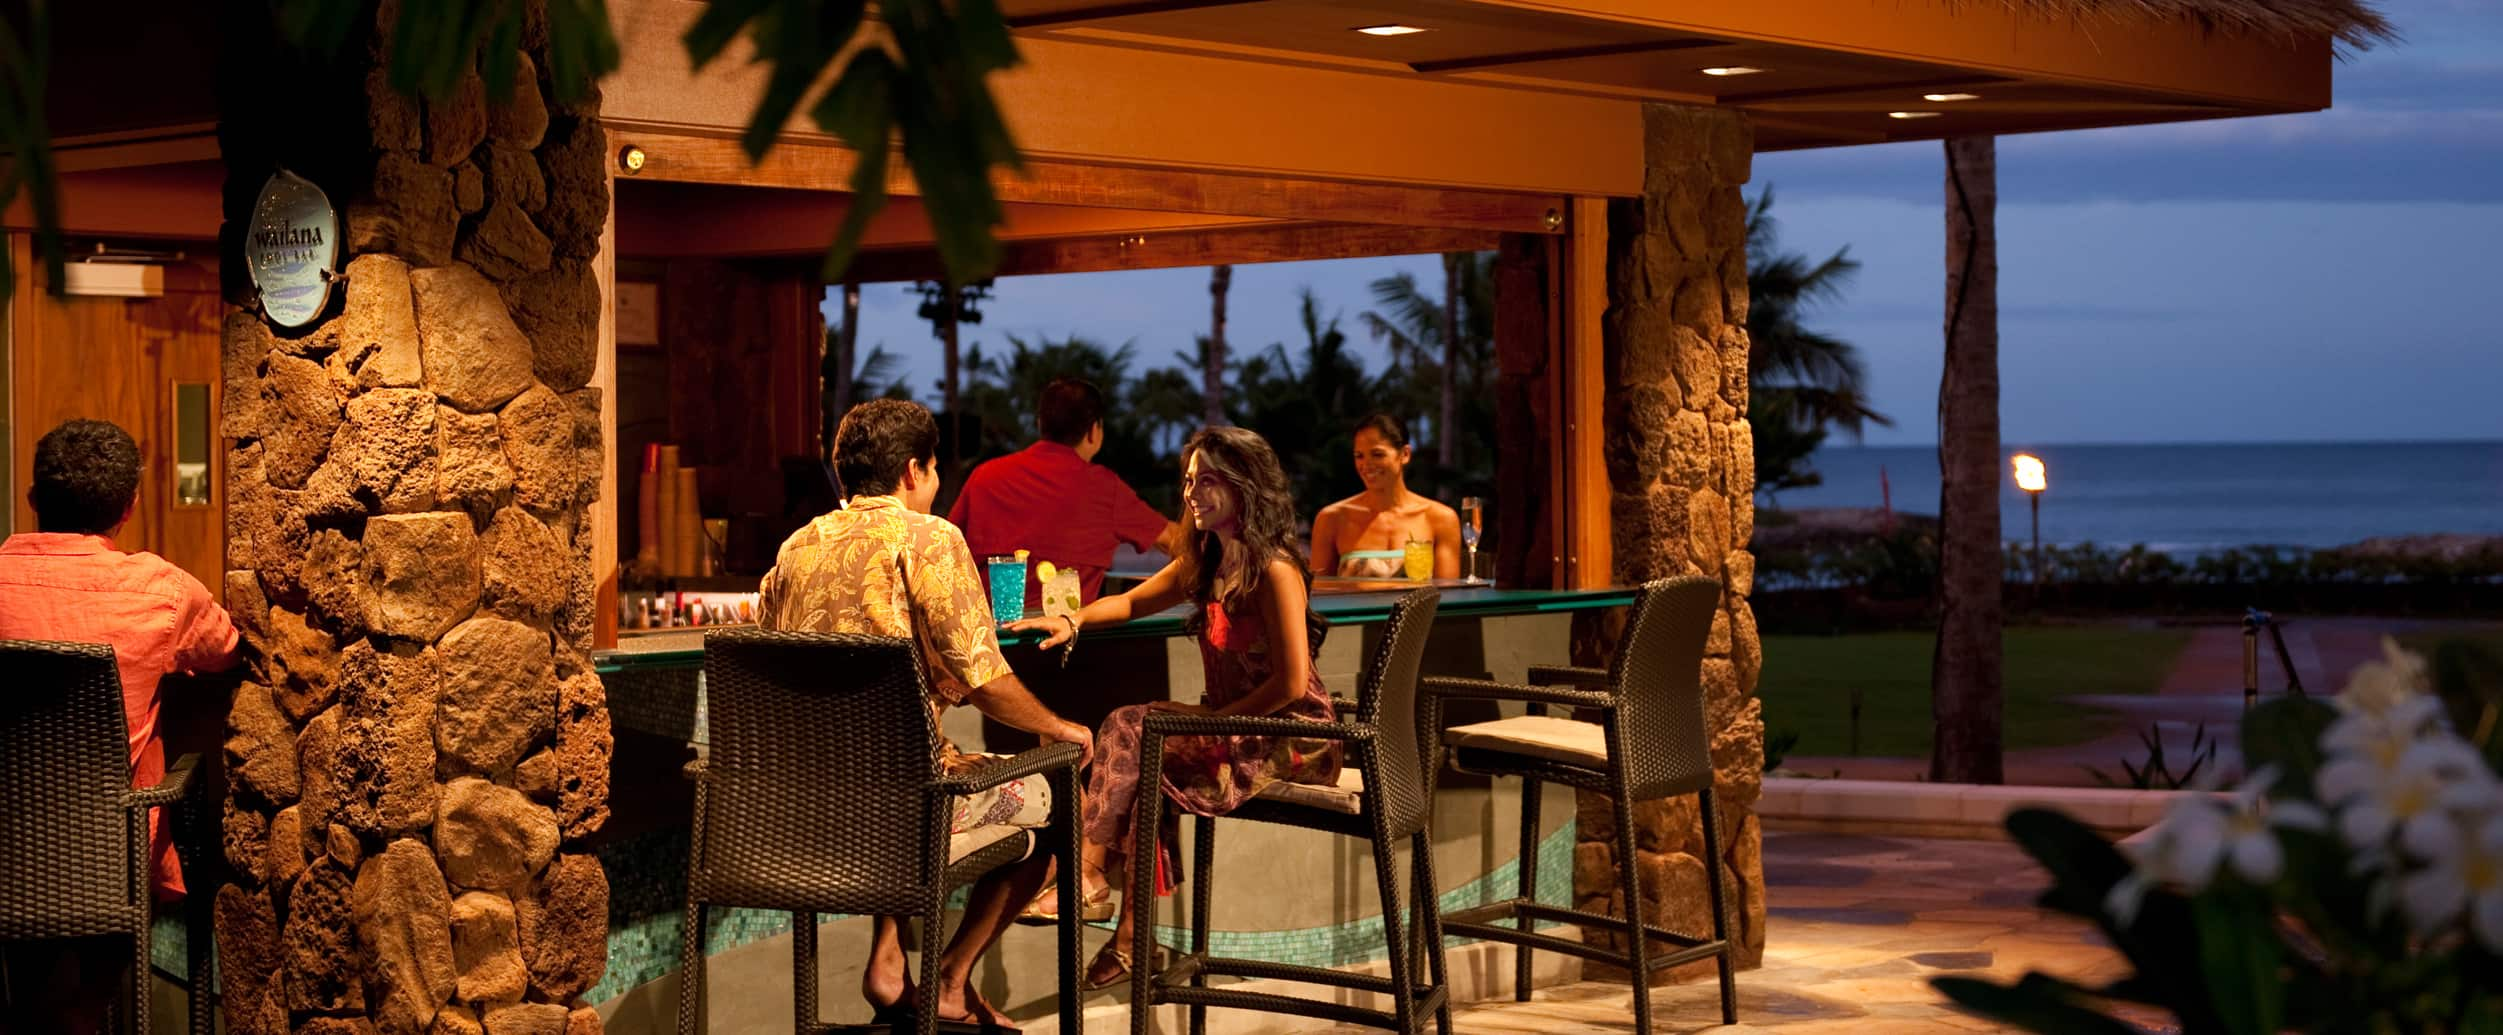 A man and a woman in resort wear enjoy evening cocktails at a thatched outdoor bar with an ocean view